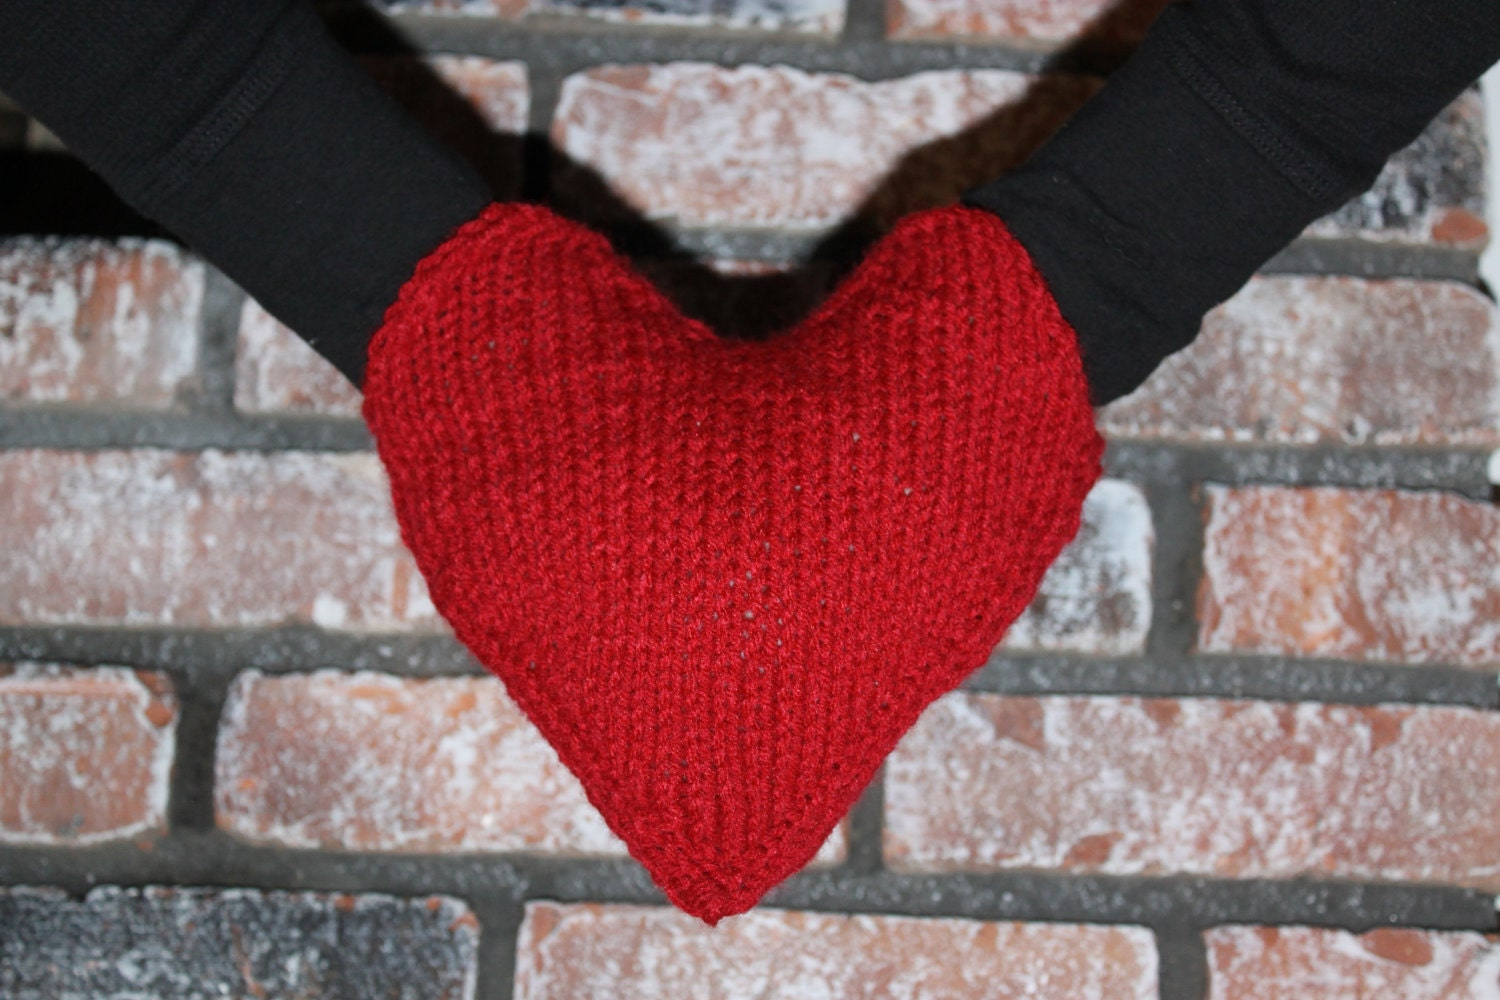 Knitting Pattern For Hand Holding Mittens : Smitten- Hand holding mitten (my own patter, now on raverly) - KNITTING